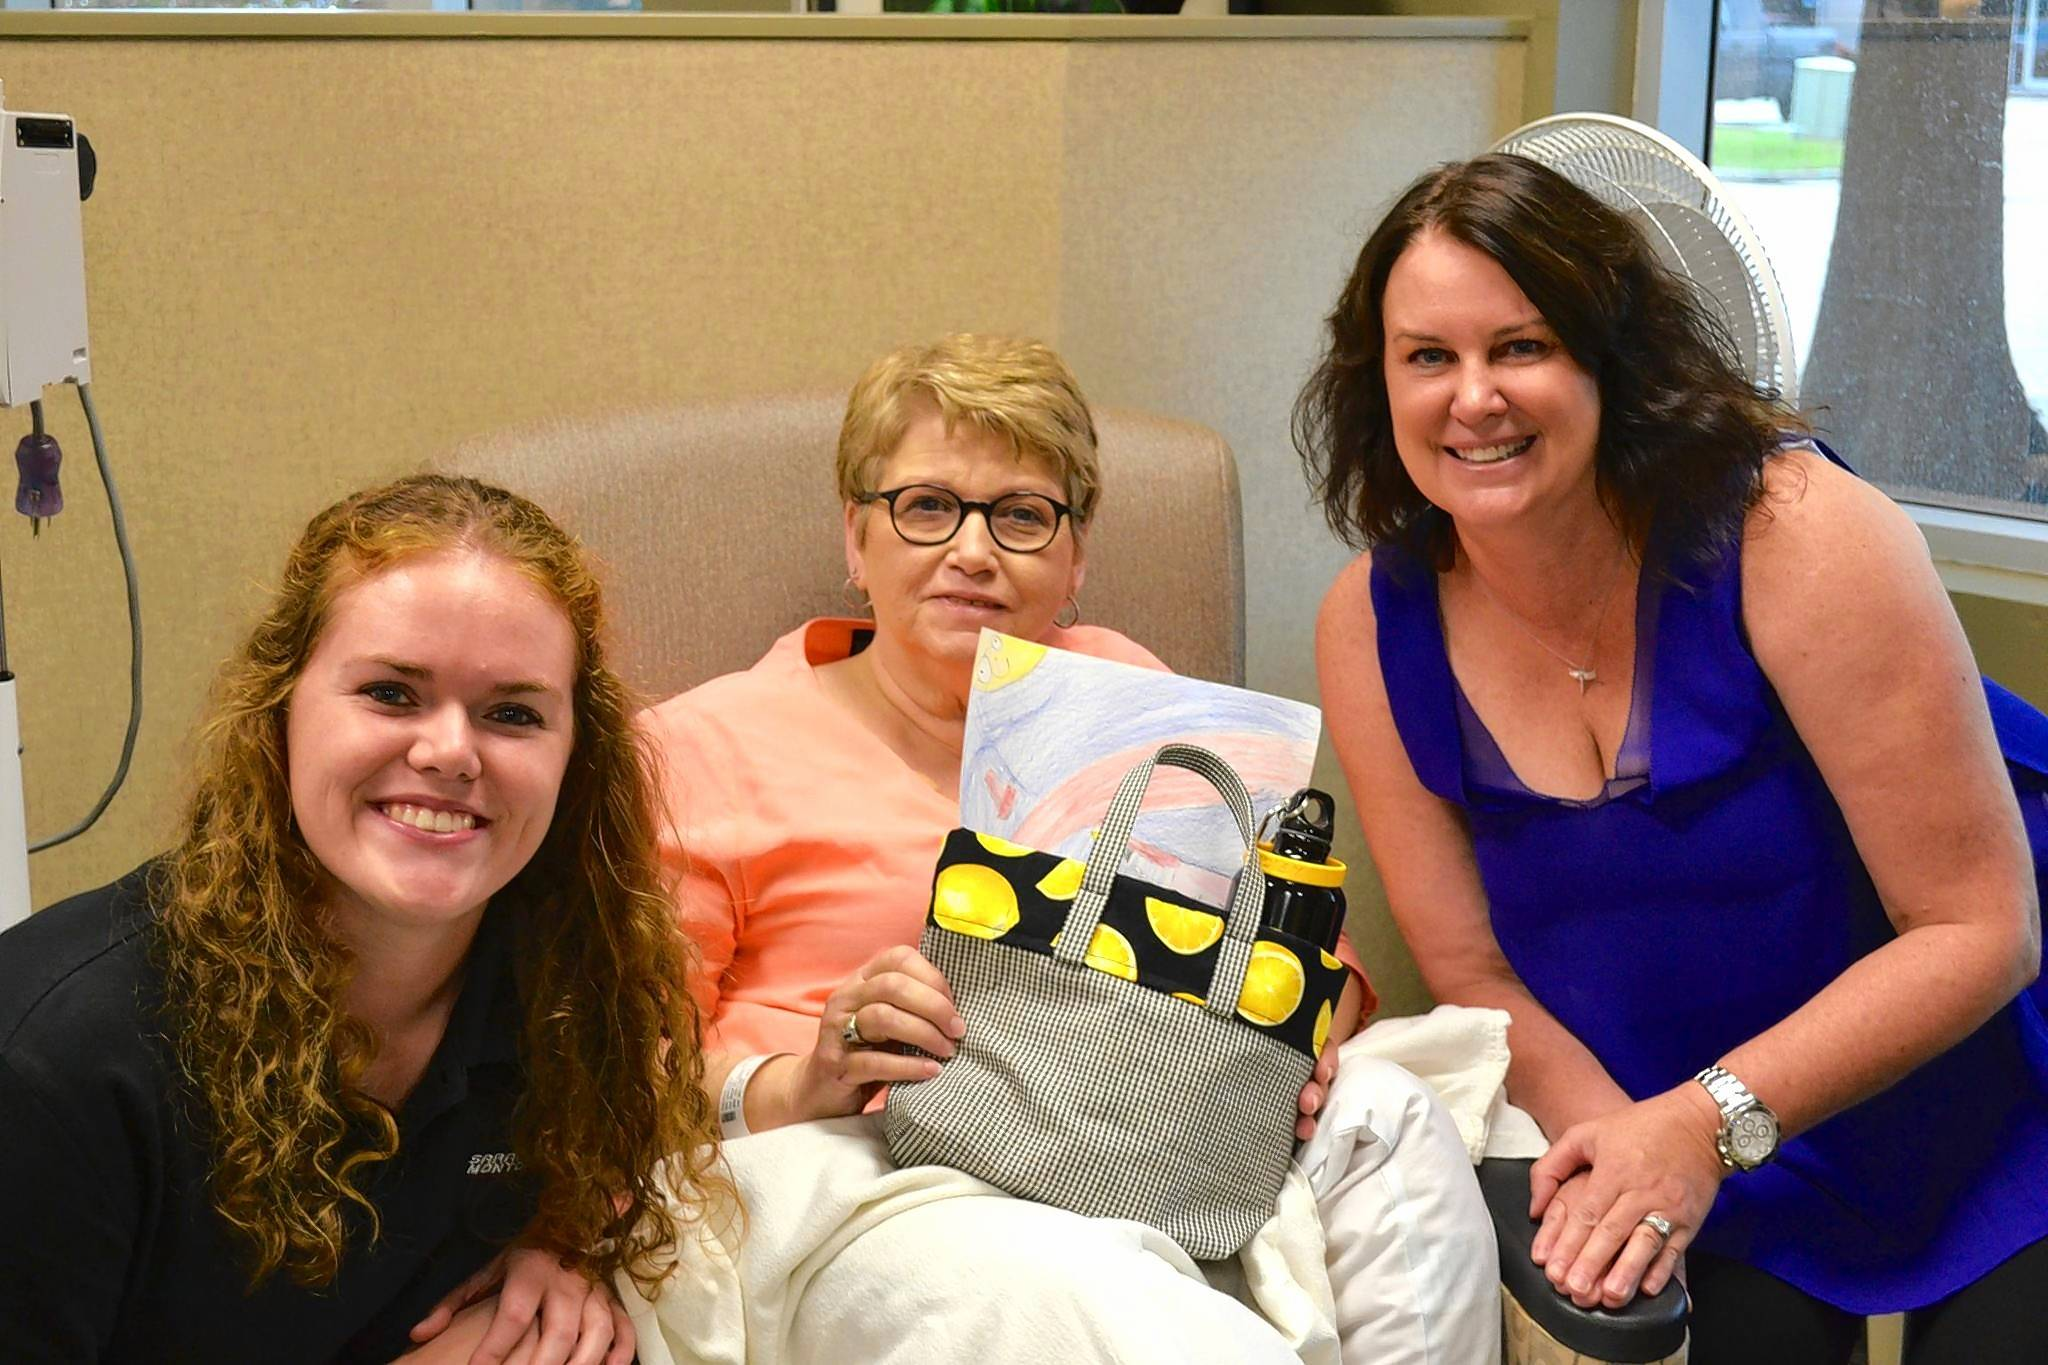 Race car driver Sarah Montgomery, left, and Jill Swanson Peltier, right, deliver a Lemons of Love bag to a cancer patient at an oncology center in Lafayette, Louisiana, where Montgomery is from.